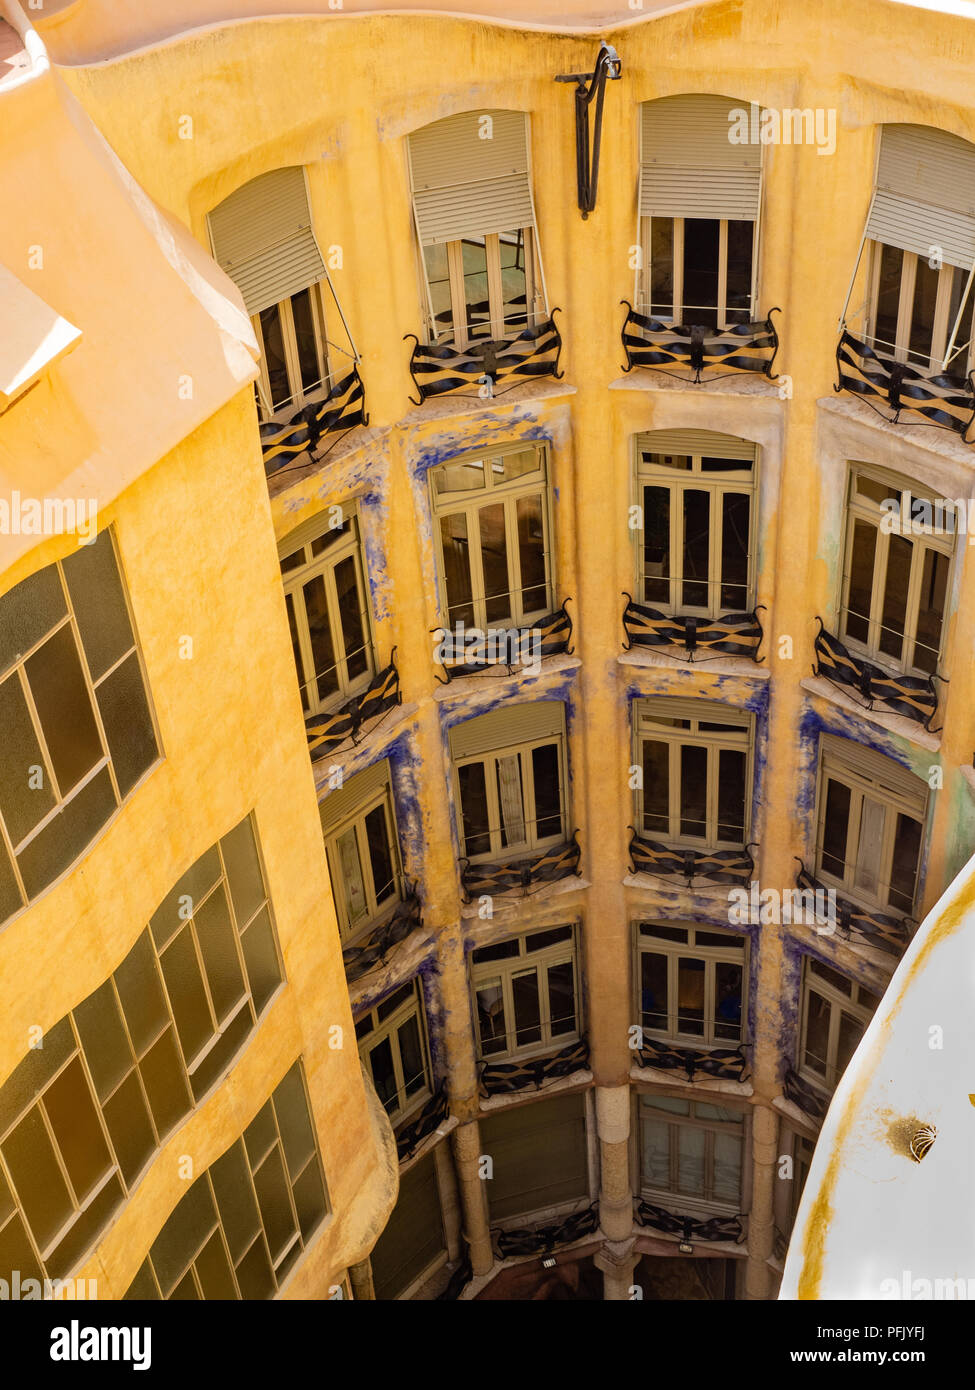 Former offices and apartments at Antoni Gaudi's La Pedrera - Casa Milà, Barcelona, Catalonia, Spain. - Stock Image